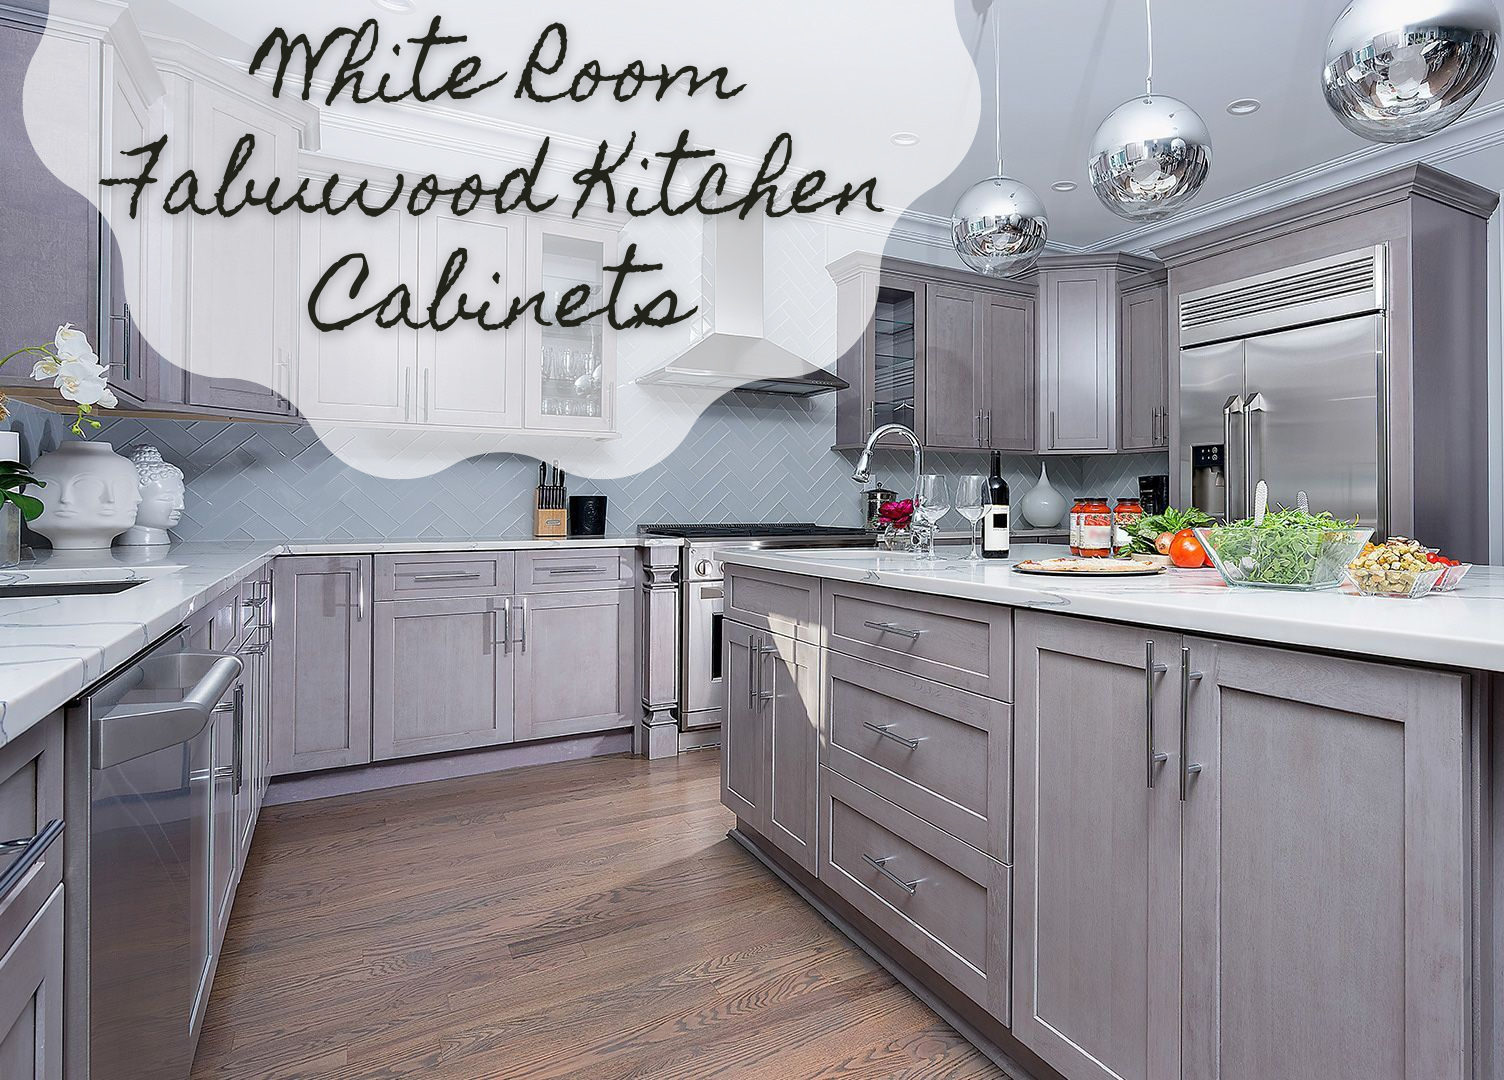 Fabuwood Kitchen Cabinets, Tips On Selecting White Room Fabuwood Kitchen Cabinets: